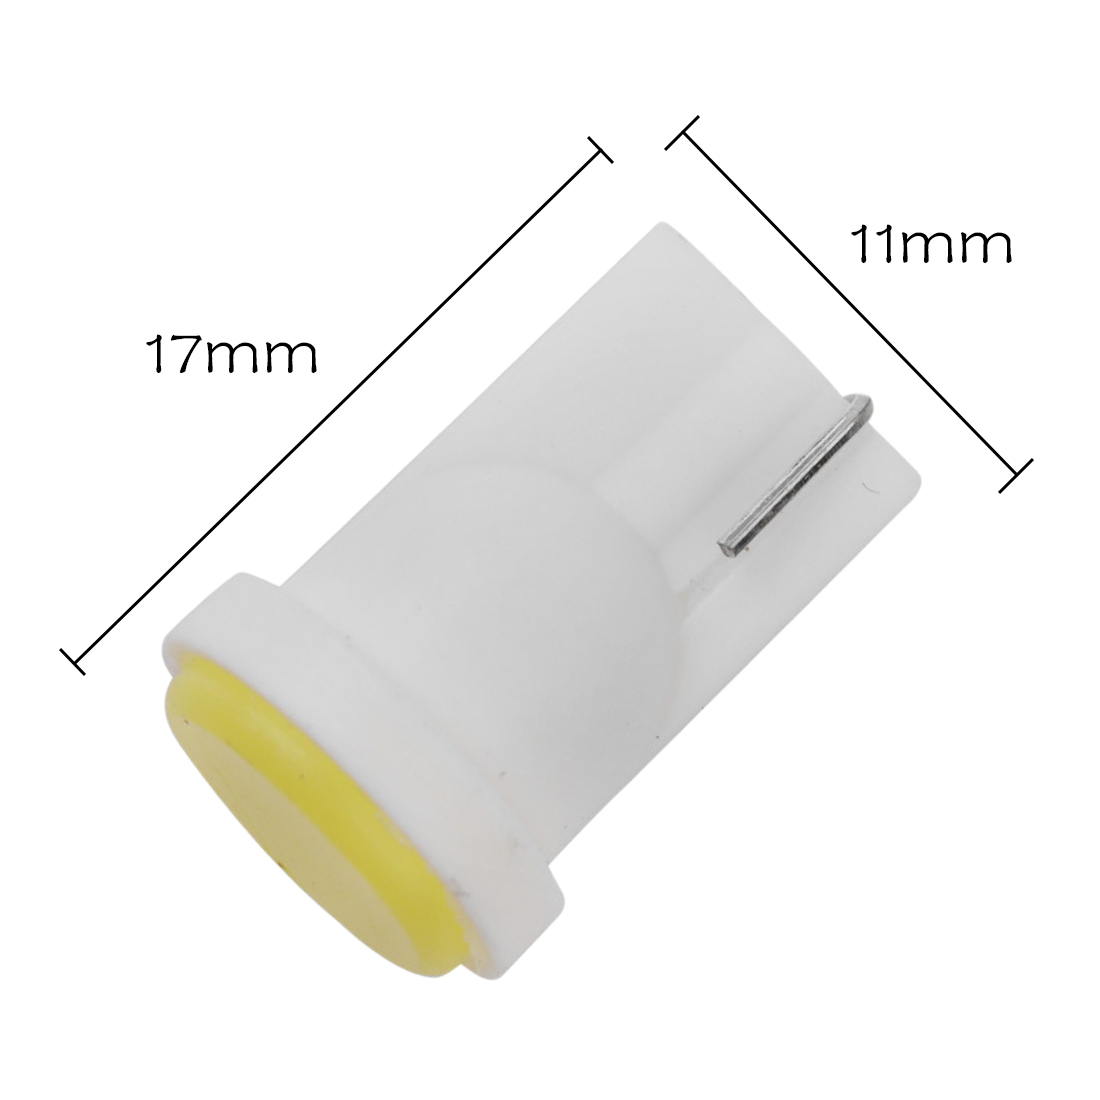 Tonewan 10pcs Ceramic Car Interior <font><b>LED</b></font> <font><b>T10</b></font> COB W5W Wedge Door Instrument Side Bulb Lamp Car White Source 12V image